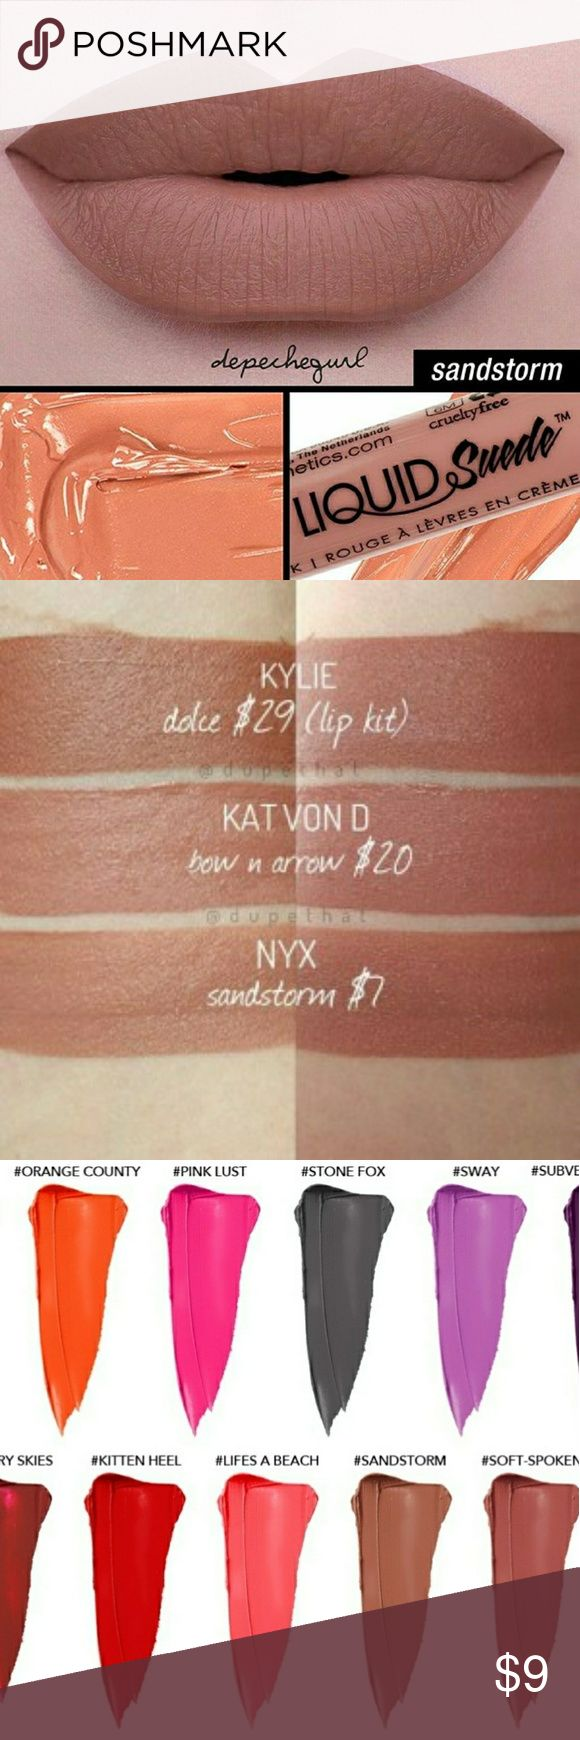 ❤NYX LIQUID SUEDE / Sandstorm 💜Nyx Liquid Suede/ Sandstorm.  ❤💕Sealed and New! Bundle and Gift!!  💌💜Christmas Bundle! 3/15 %off!!🎼🎶🎵 NYX Cosmetics Makeup Lipstick